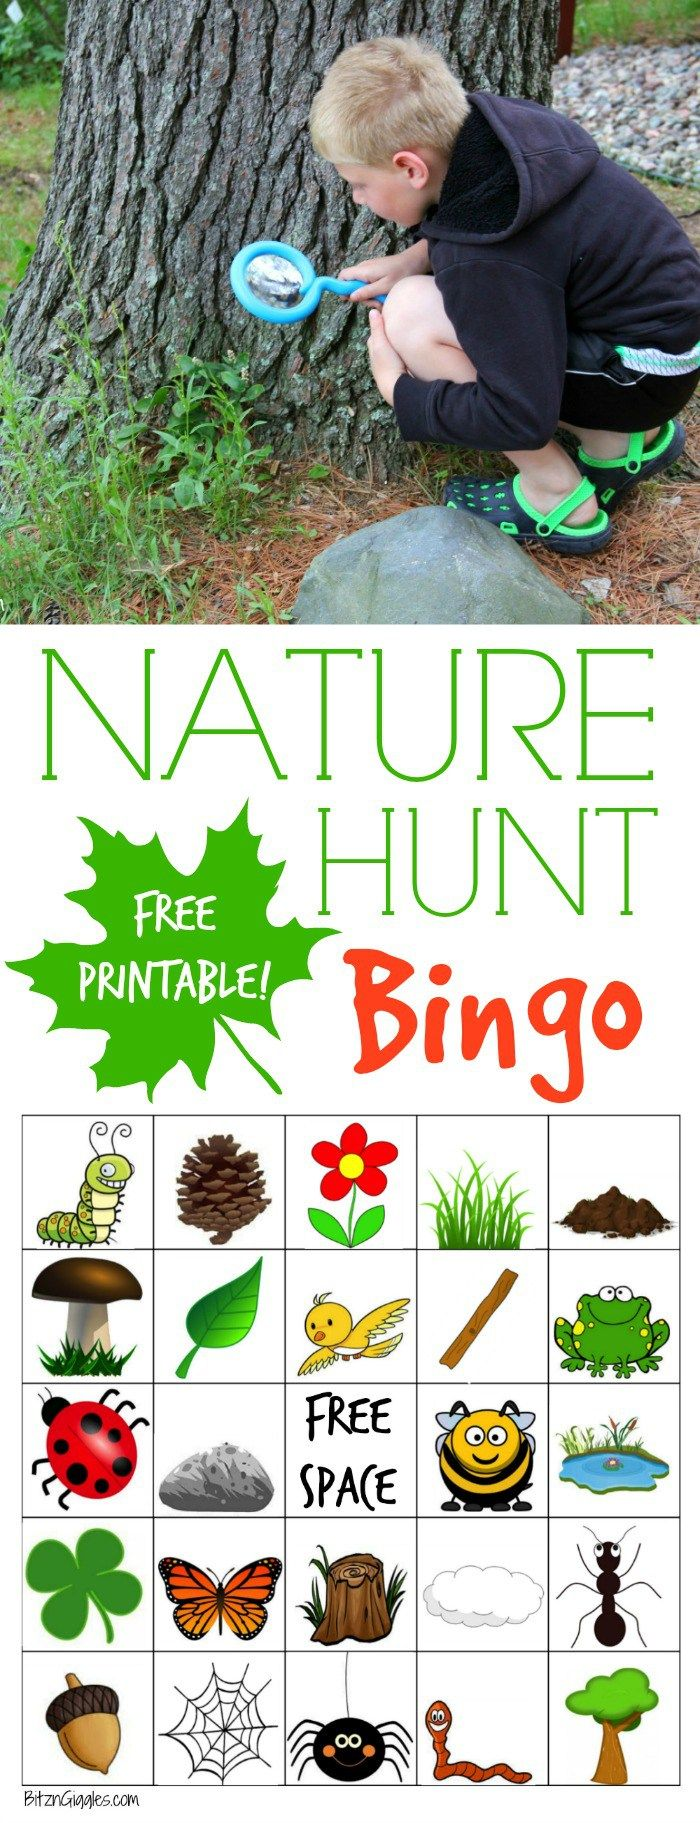 Nature Hunt Bingo - A super fun outdoor game for kids that encourages exploration of the world around them!